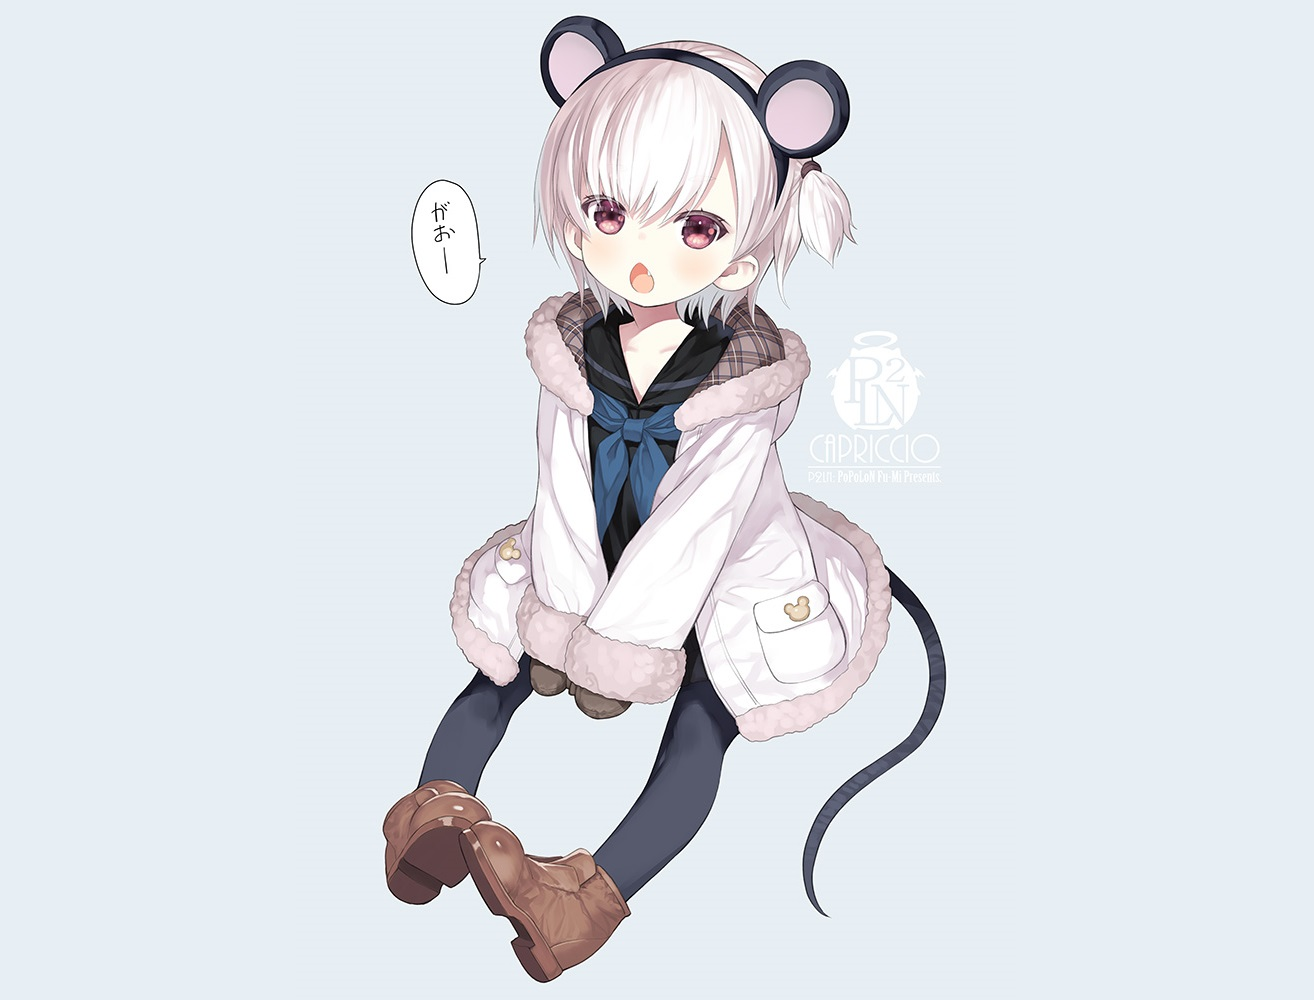 animal_ears blue boots capriccio fang headband hoodie loli mousegirl original pantyhose pink_eyes ponytail school_uniform short_hair tail watermark white_hair